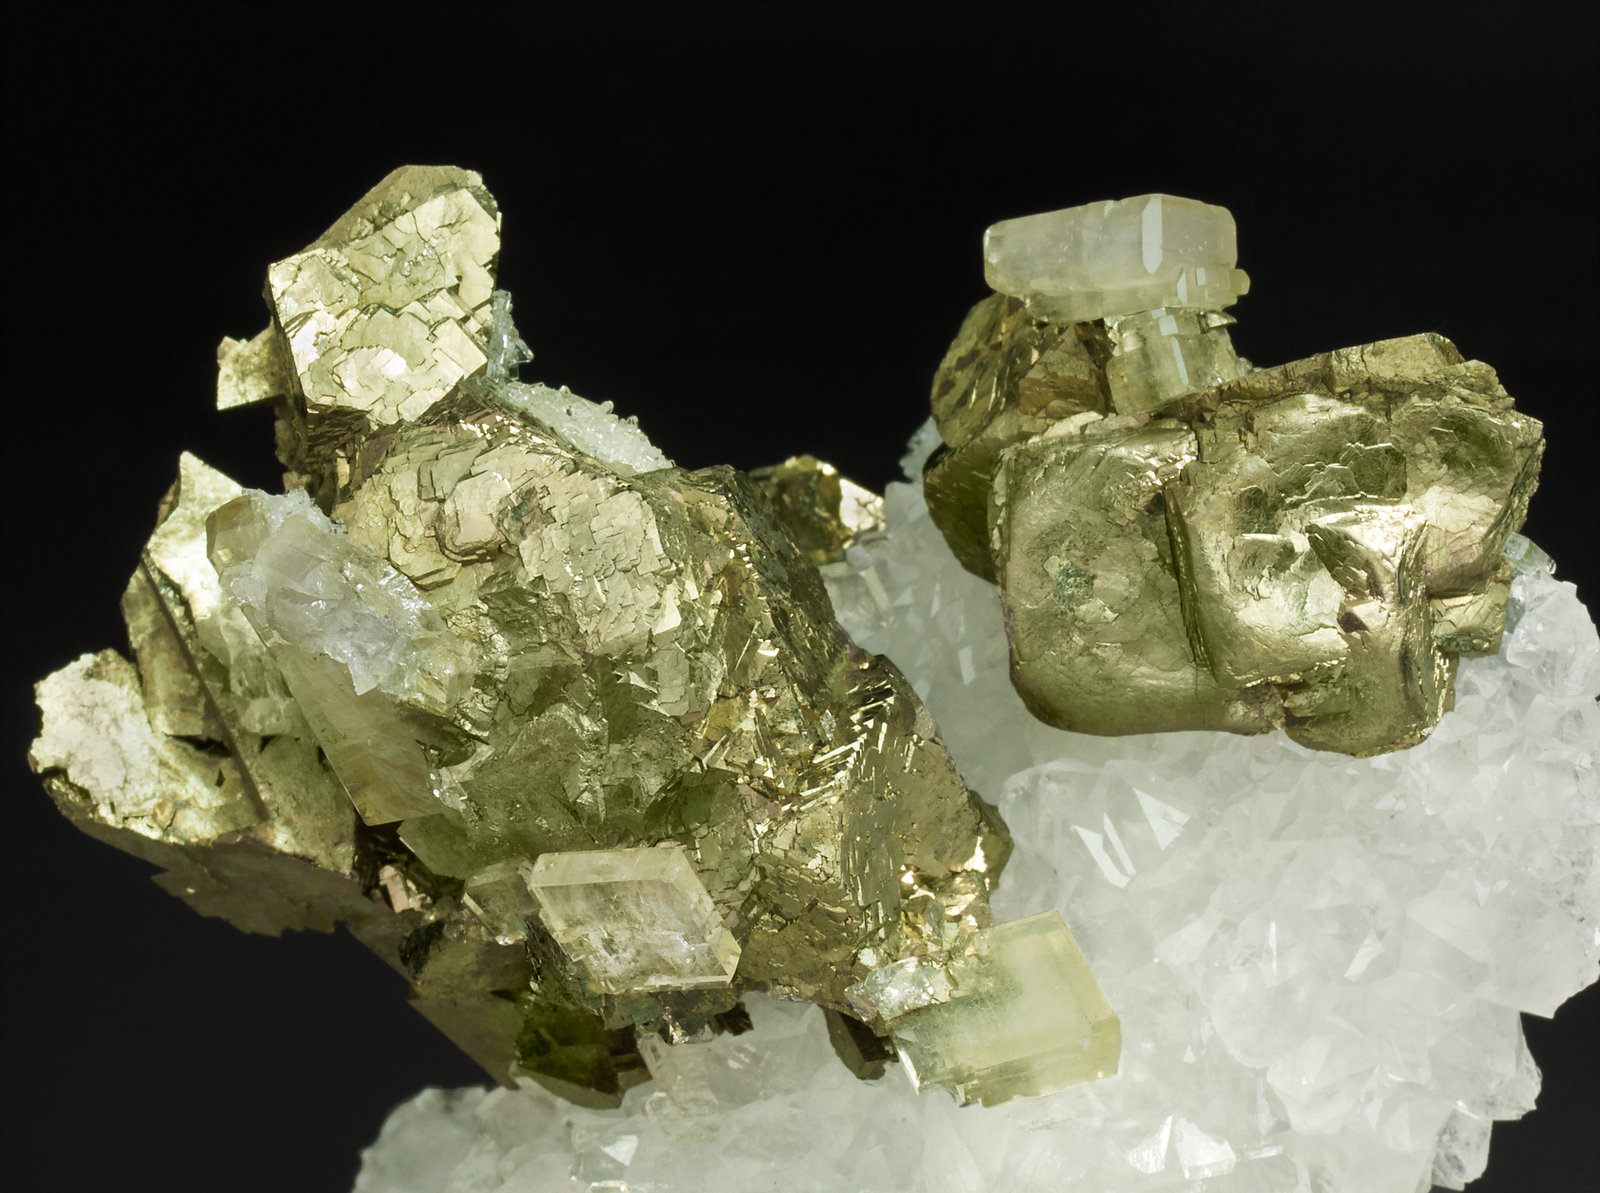 specimens/s_imagesY1/Pyrite-EF67Y1d.jpg